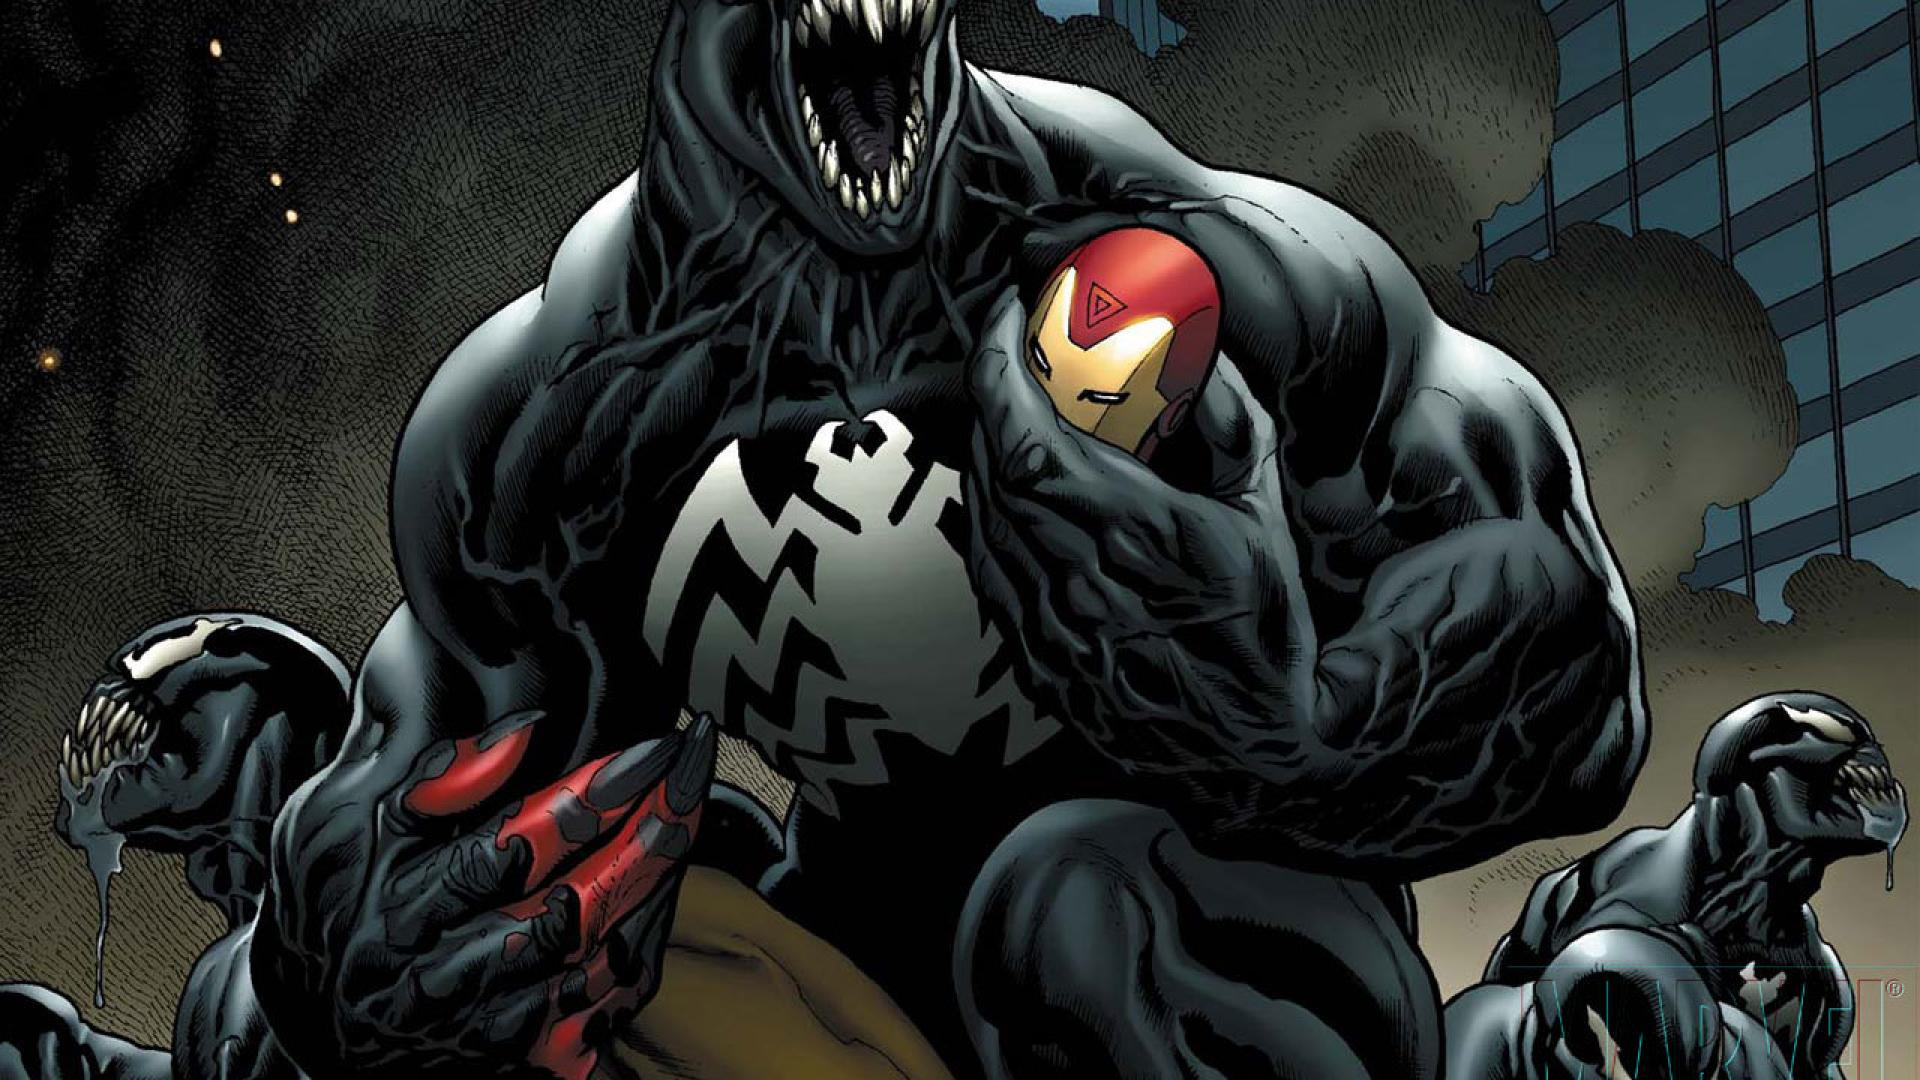 Marvel Venom Wallpapers Top Free Marvel Venom Backgrounds